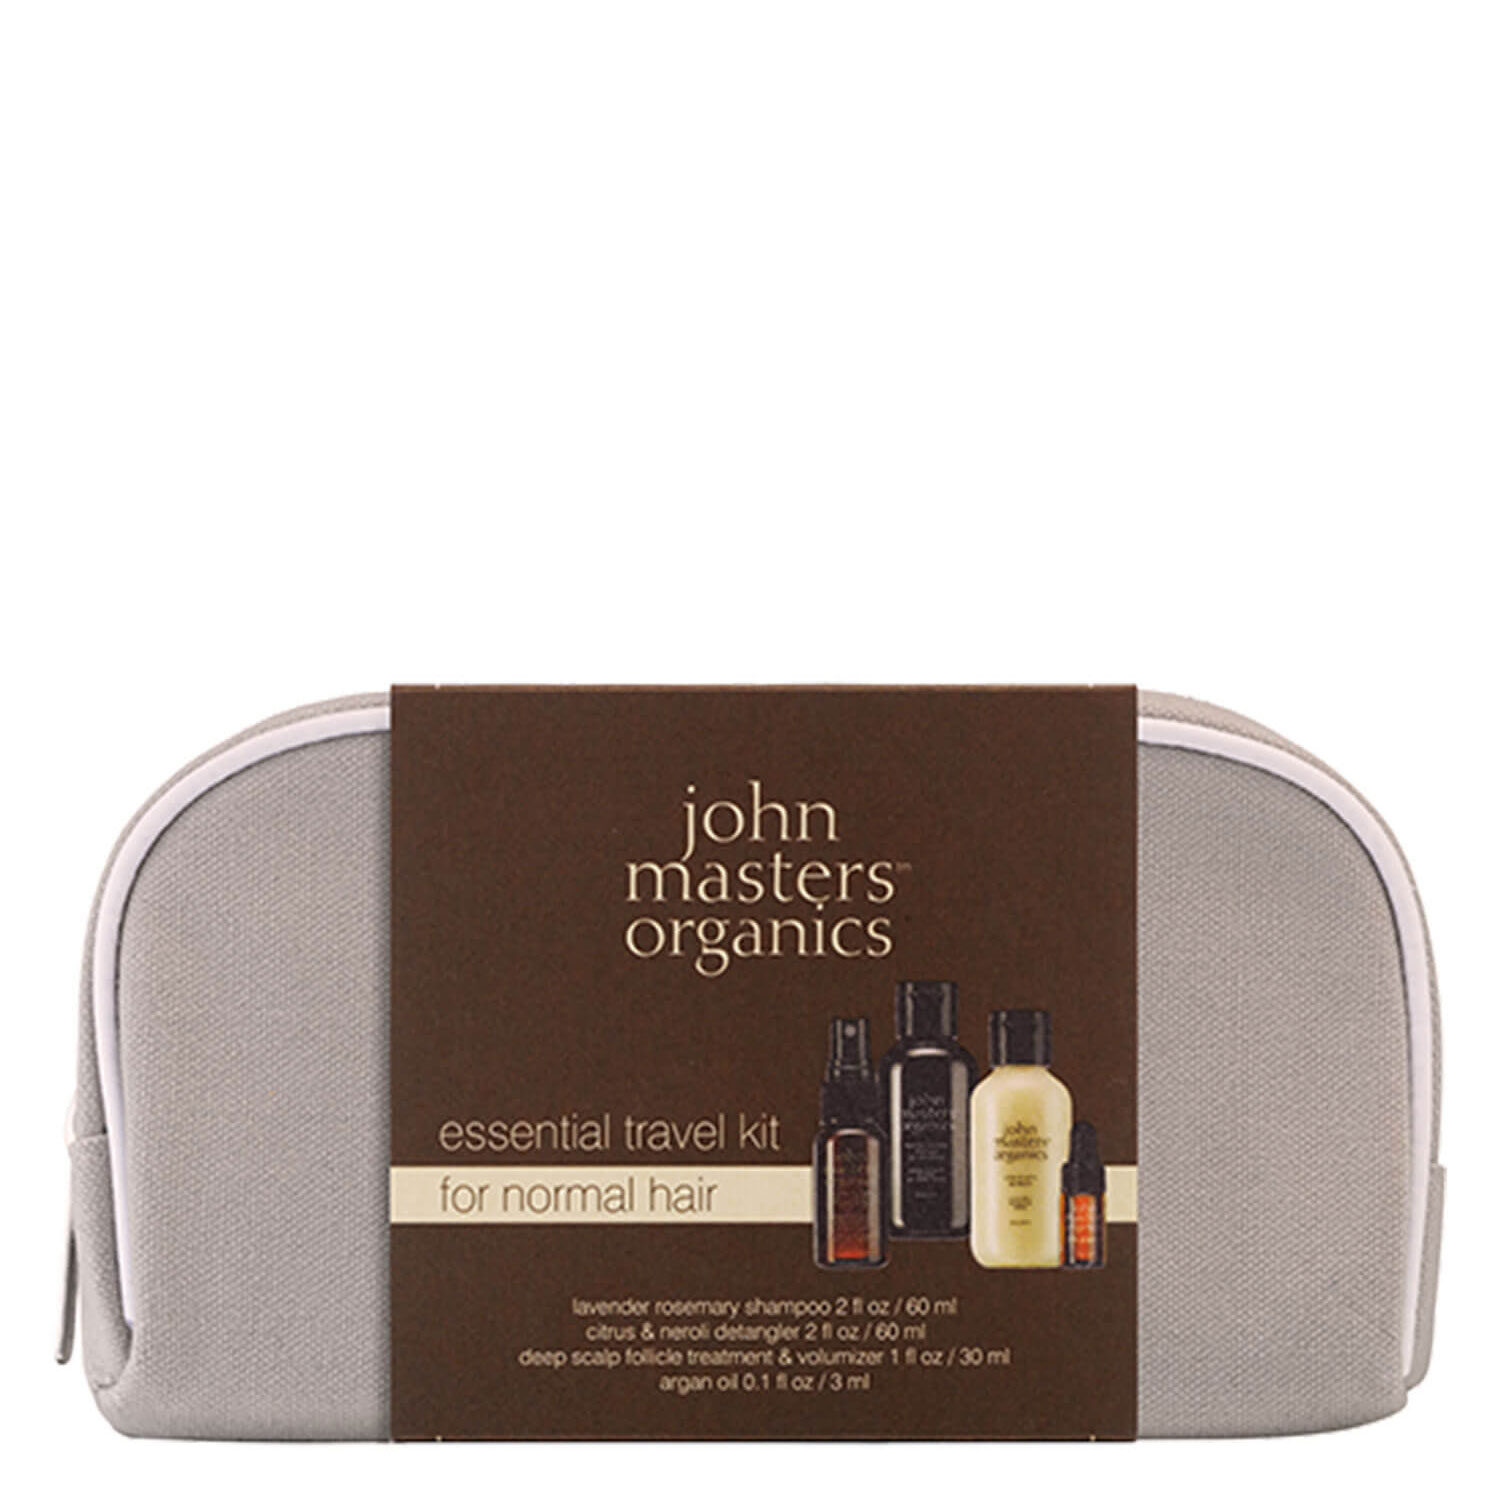 JMO Hair Care - Essential Travel Kit for Normal Hair